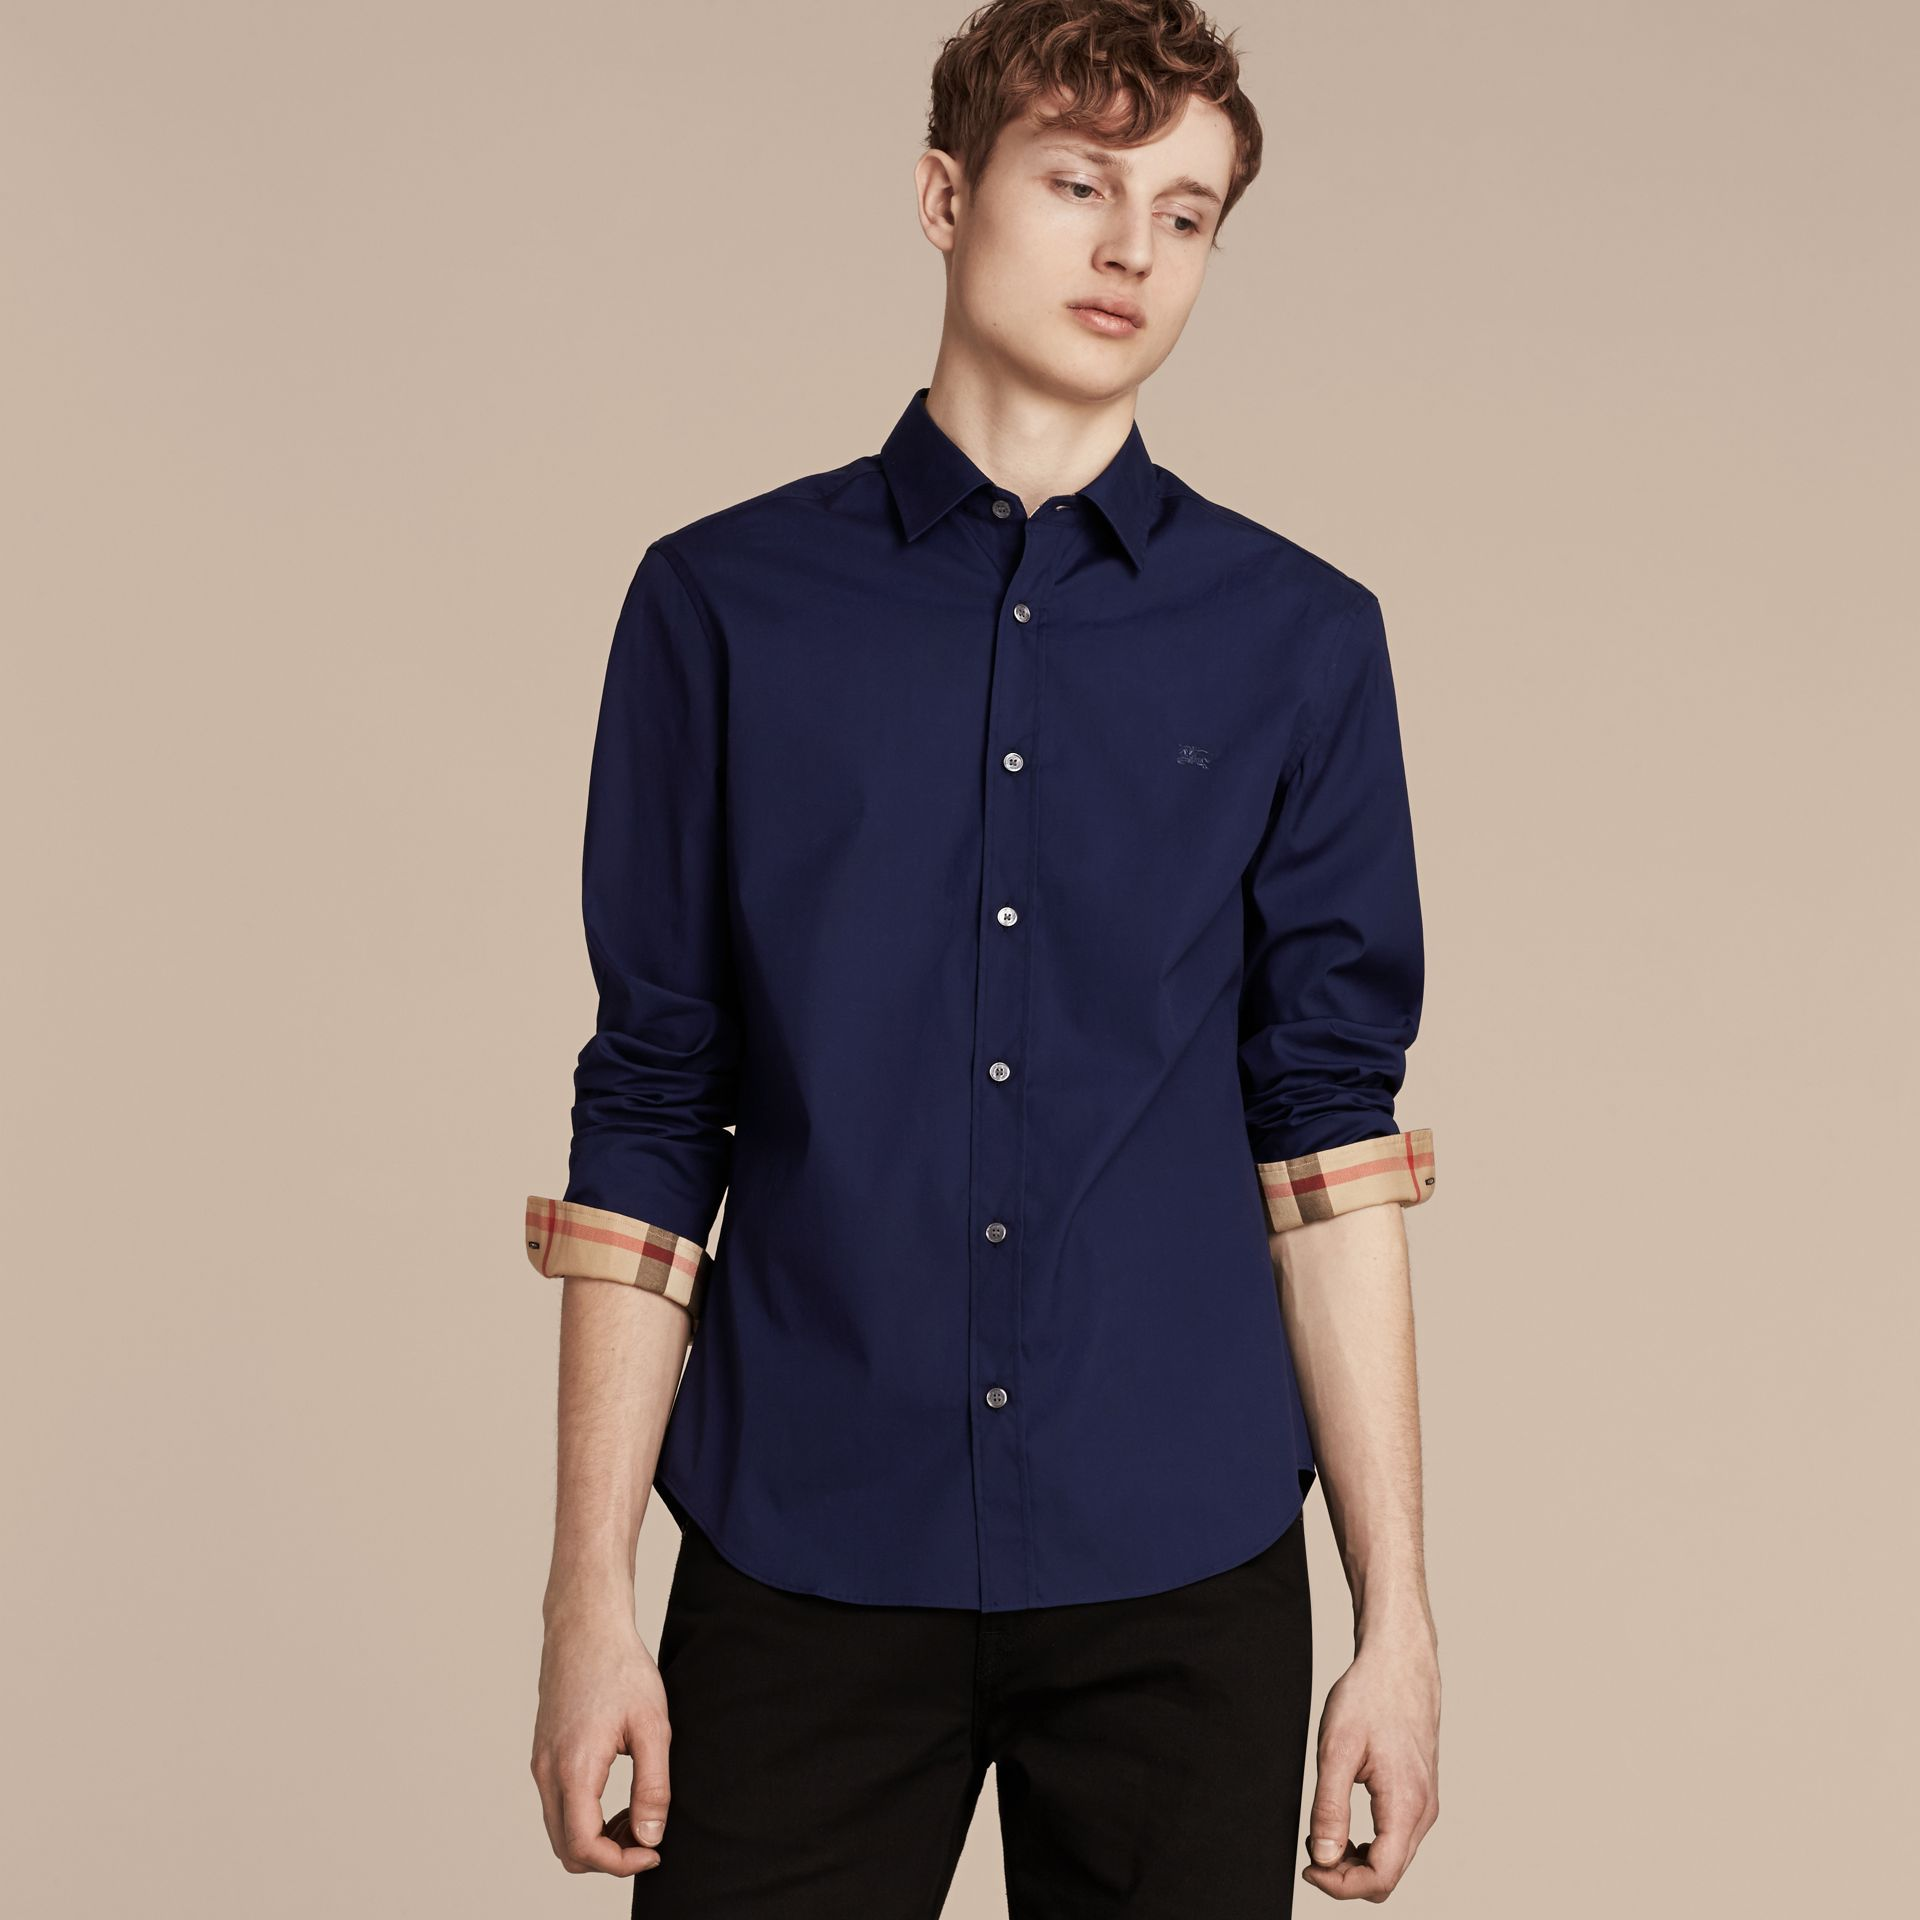 Indigo blue Check Detail Stretch Cotton Poplin Shirt Indigo Blue - gallery image 5